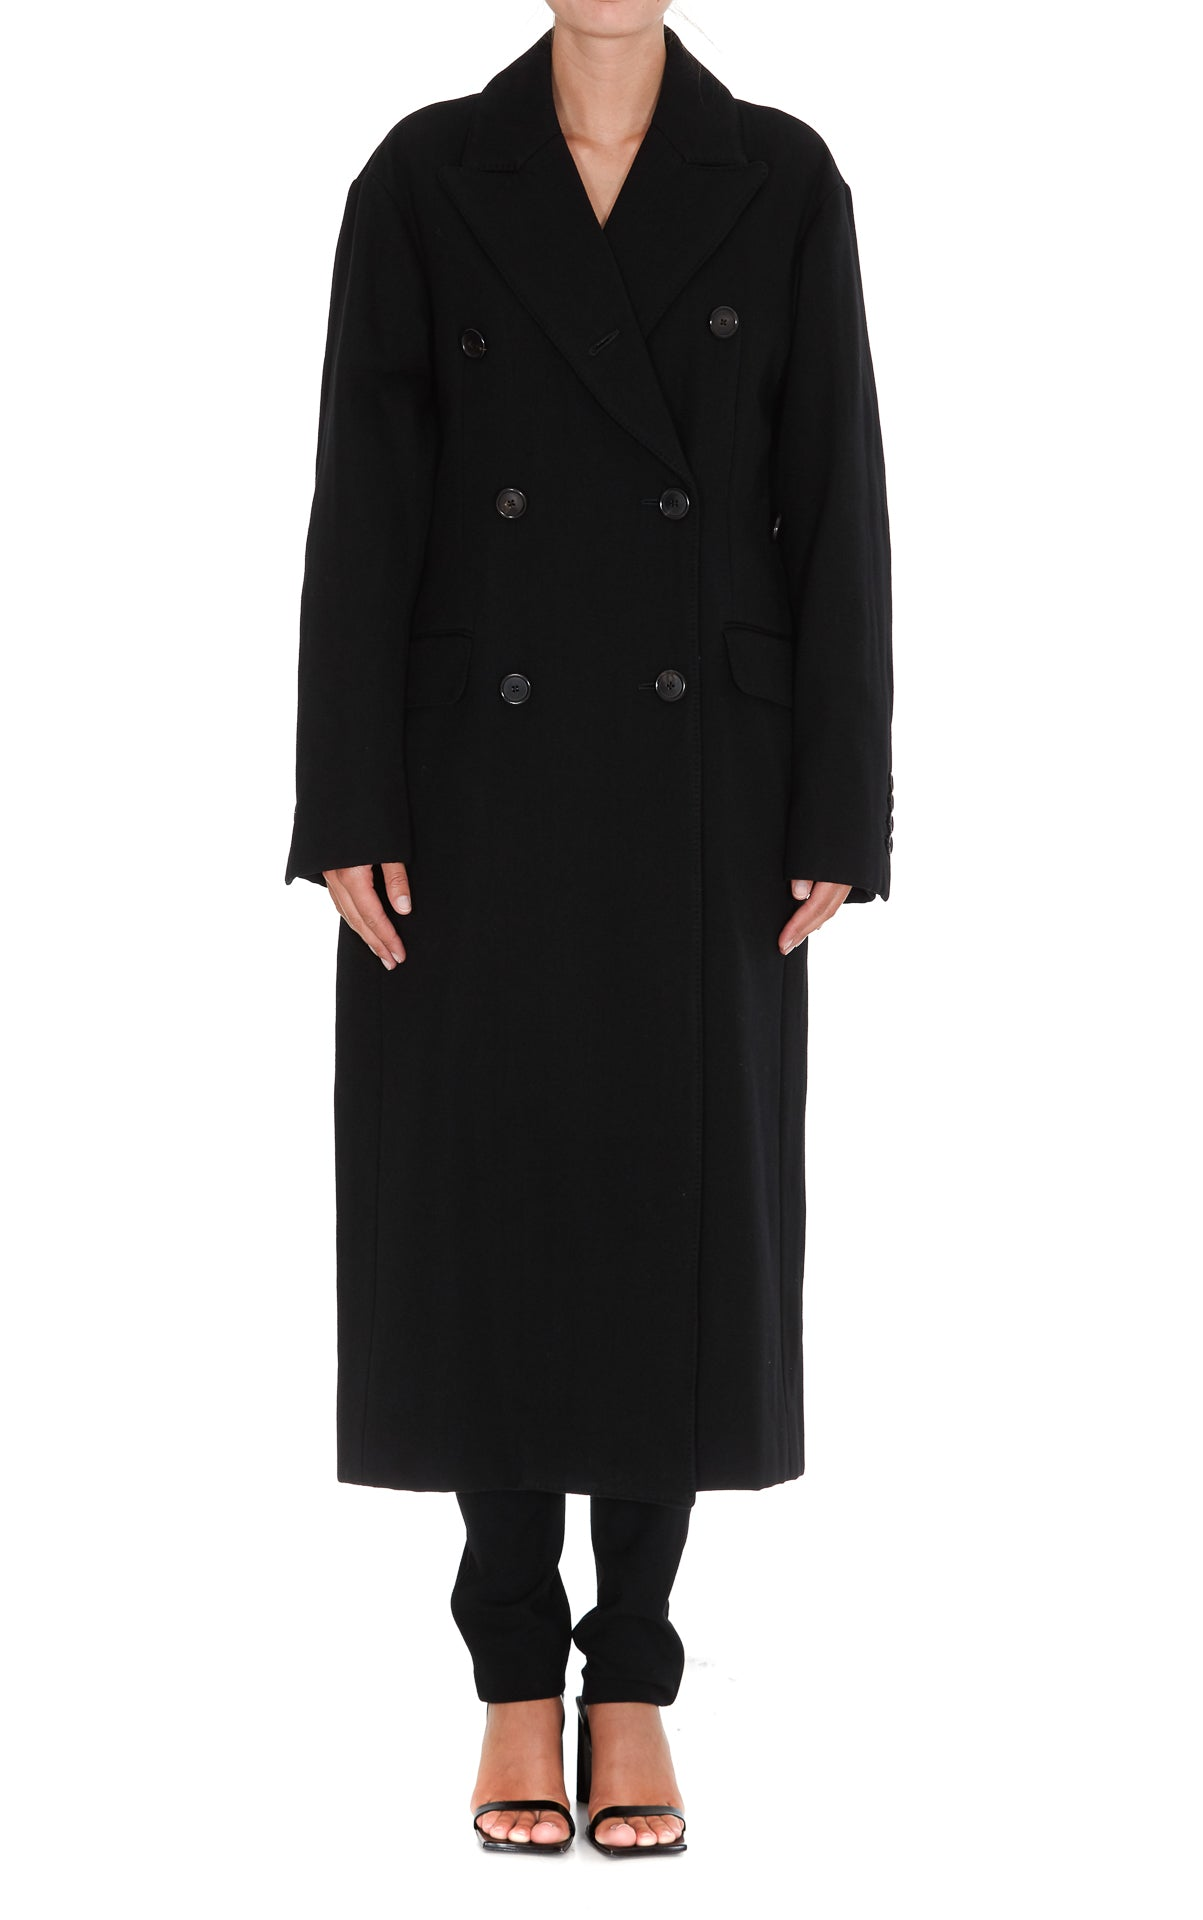 Ann Demeulemeester ANN DEMEULEMEESTER DOUBLE BREASTED COAT